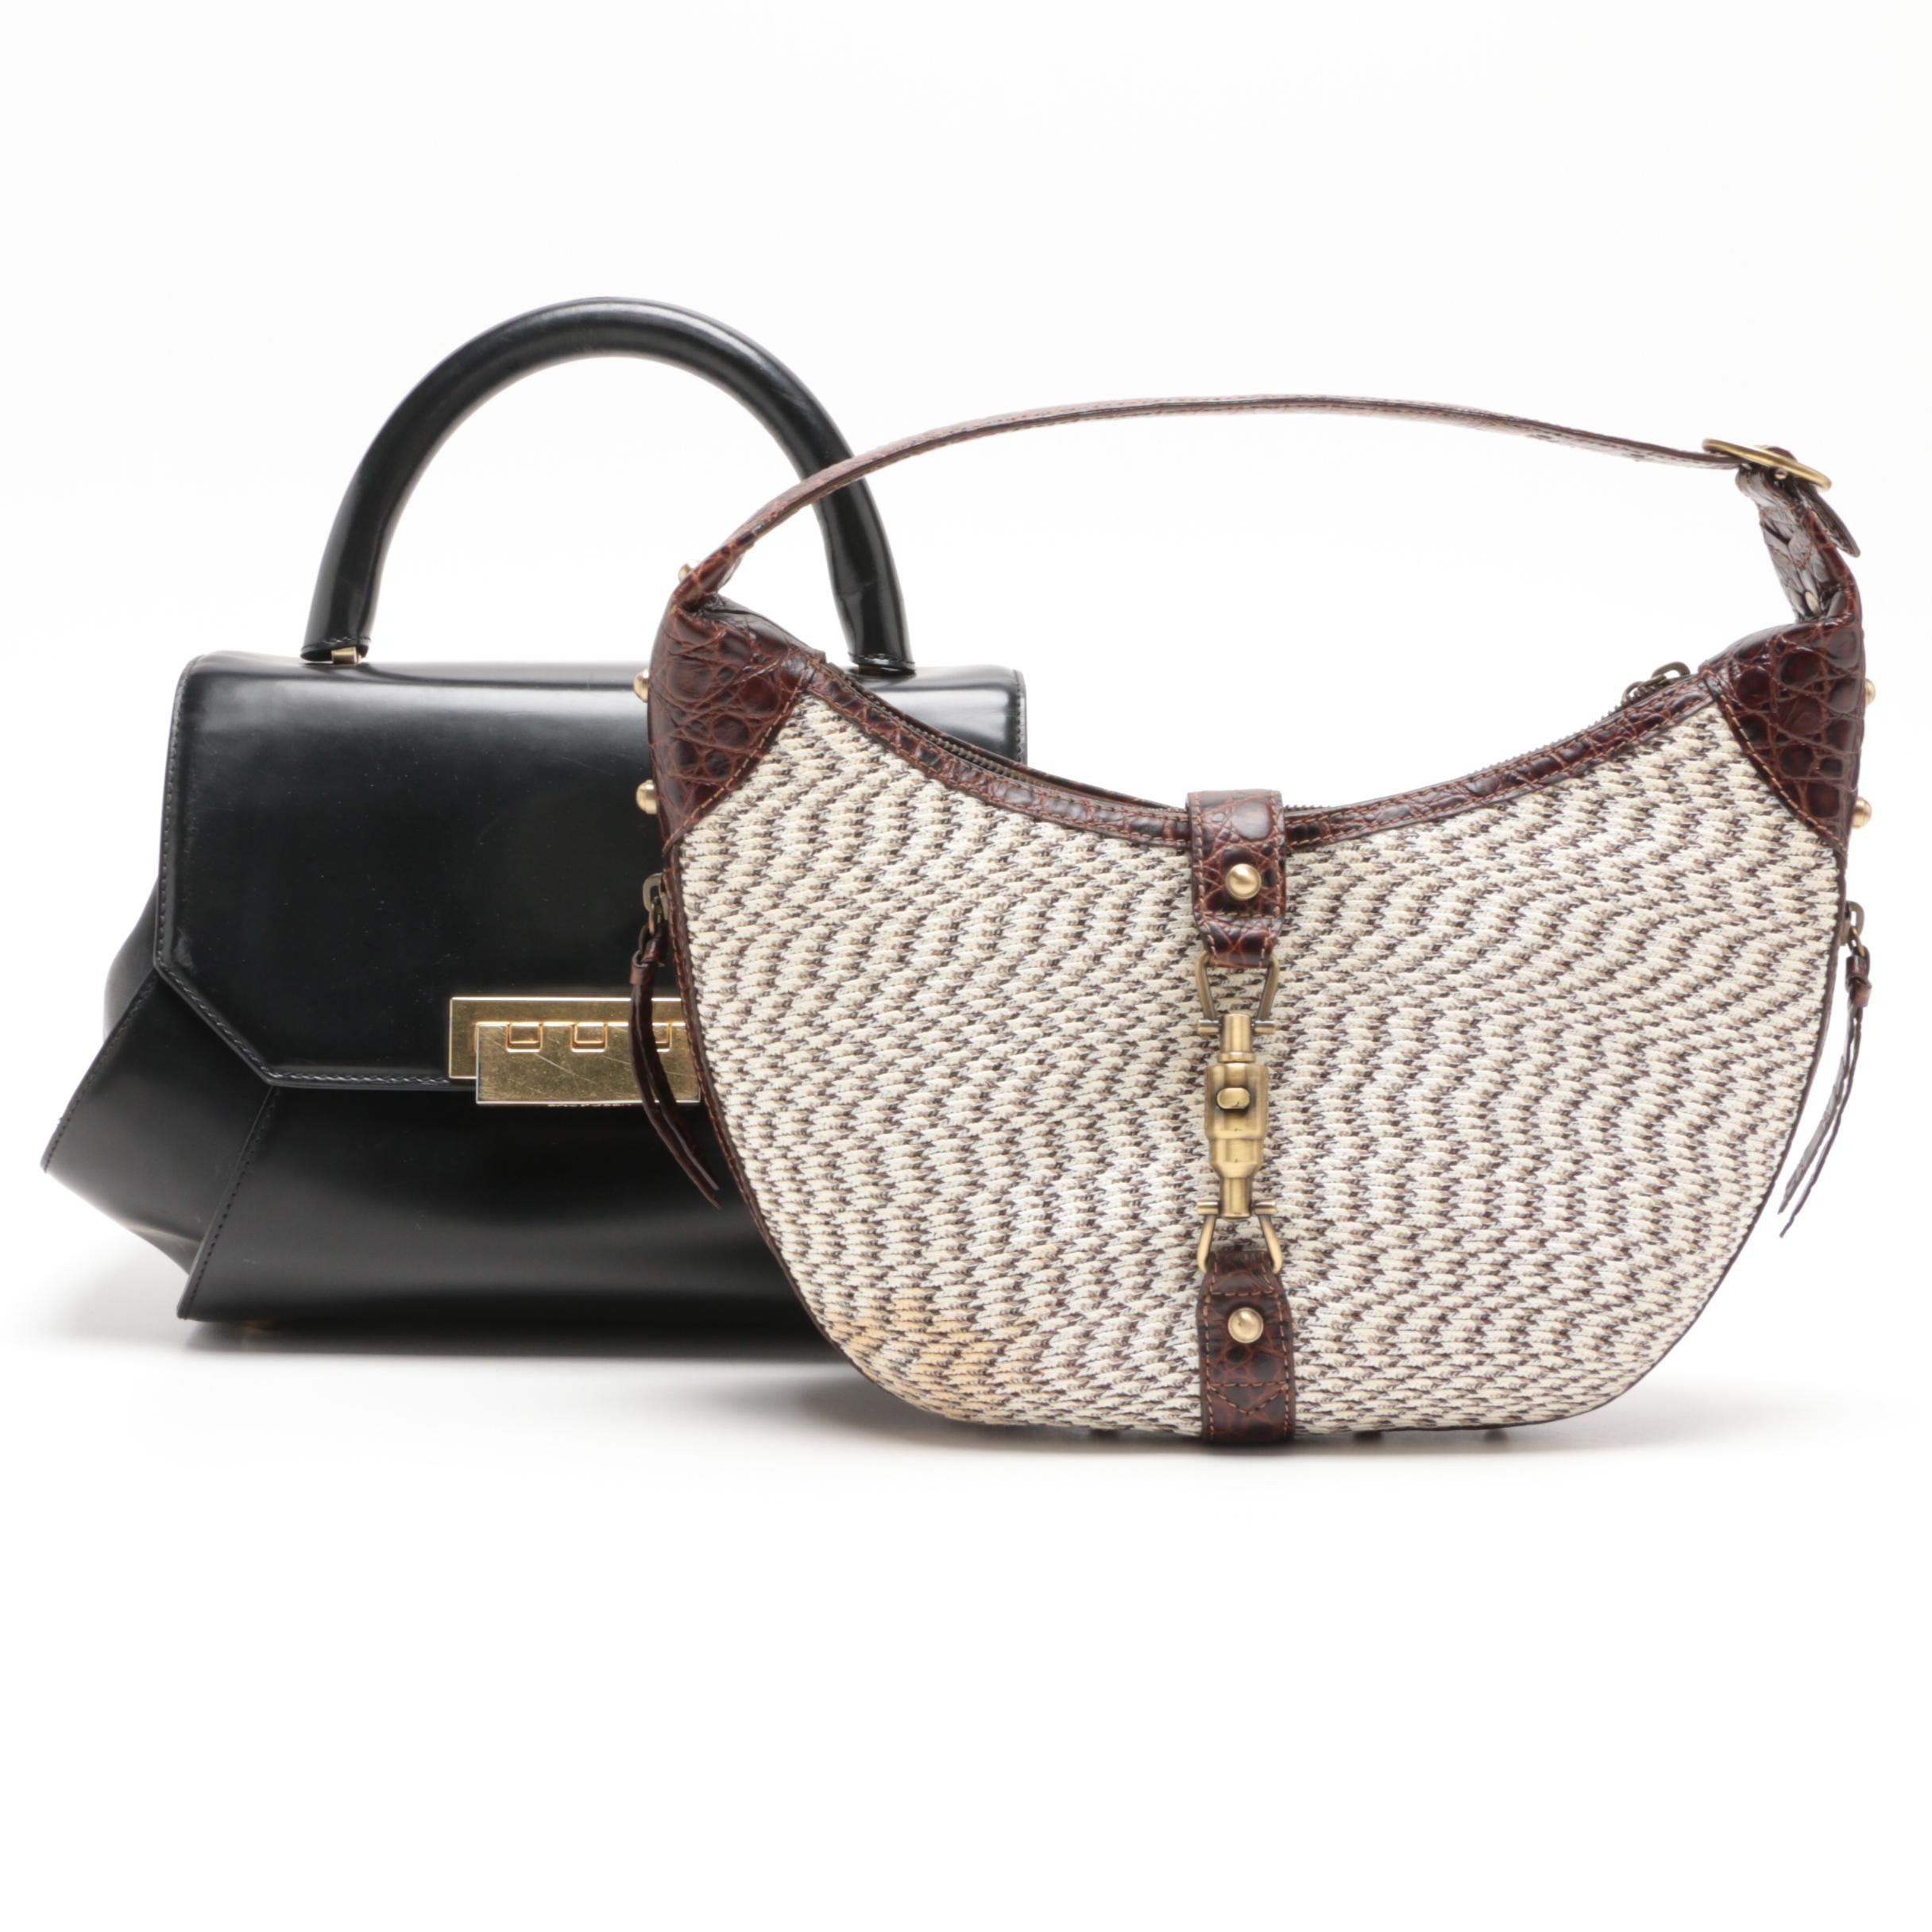 Zac by Zac Posen Black Leather Satchel and Eric Javits Woven Shoulder Bag